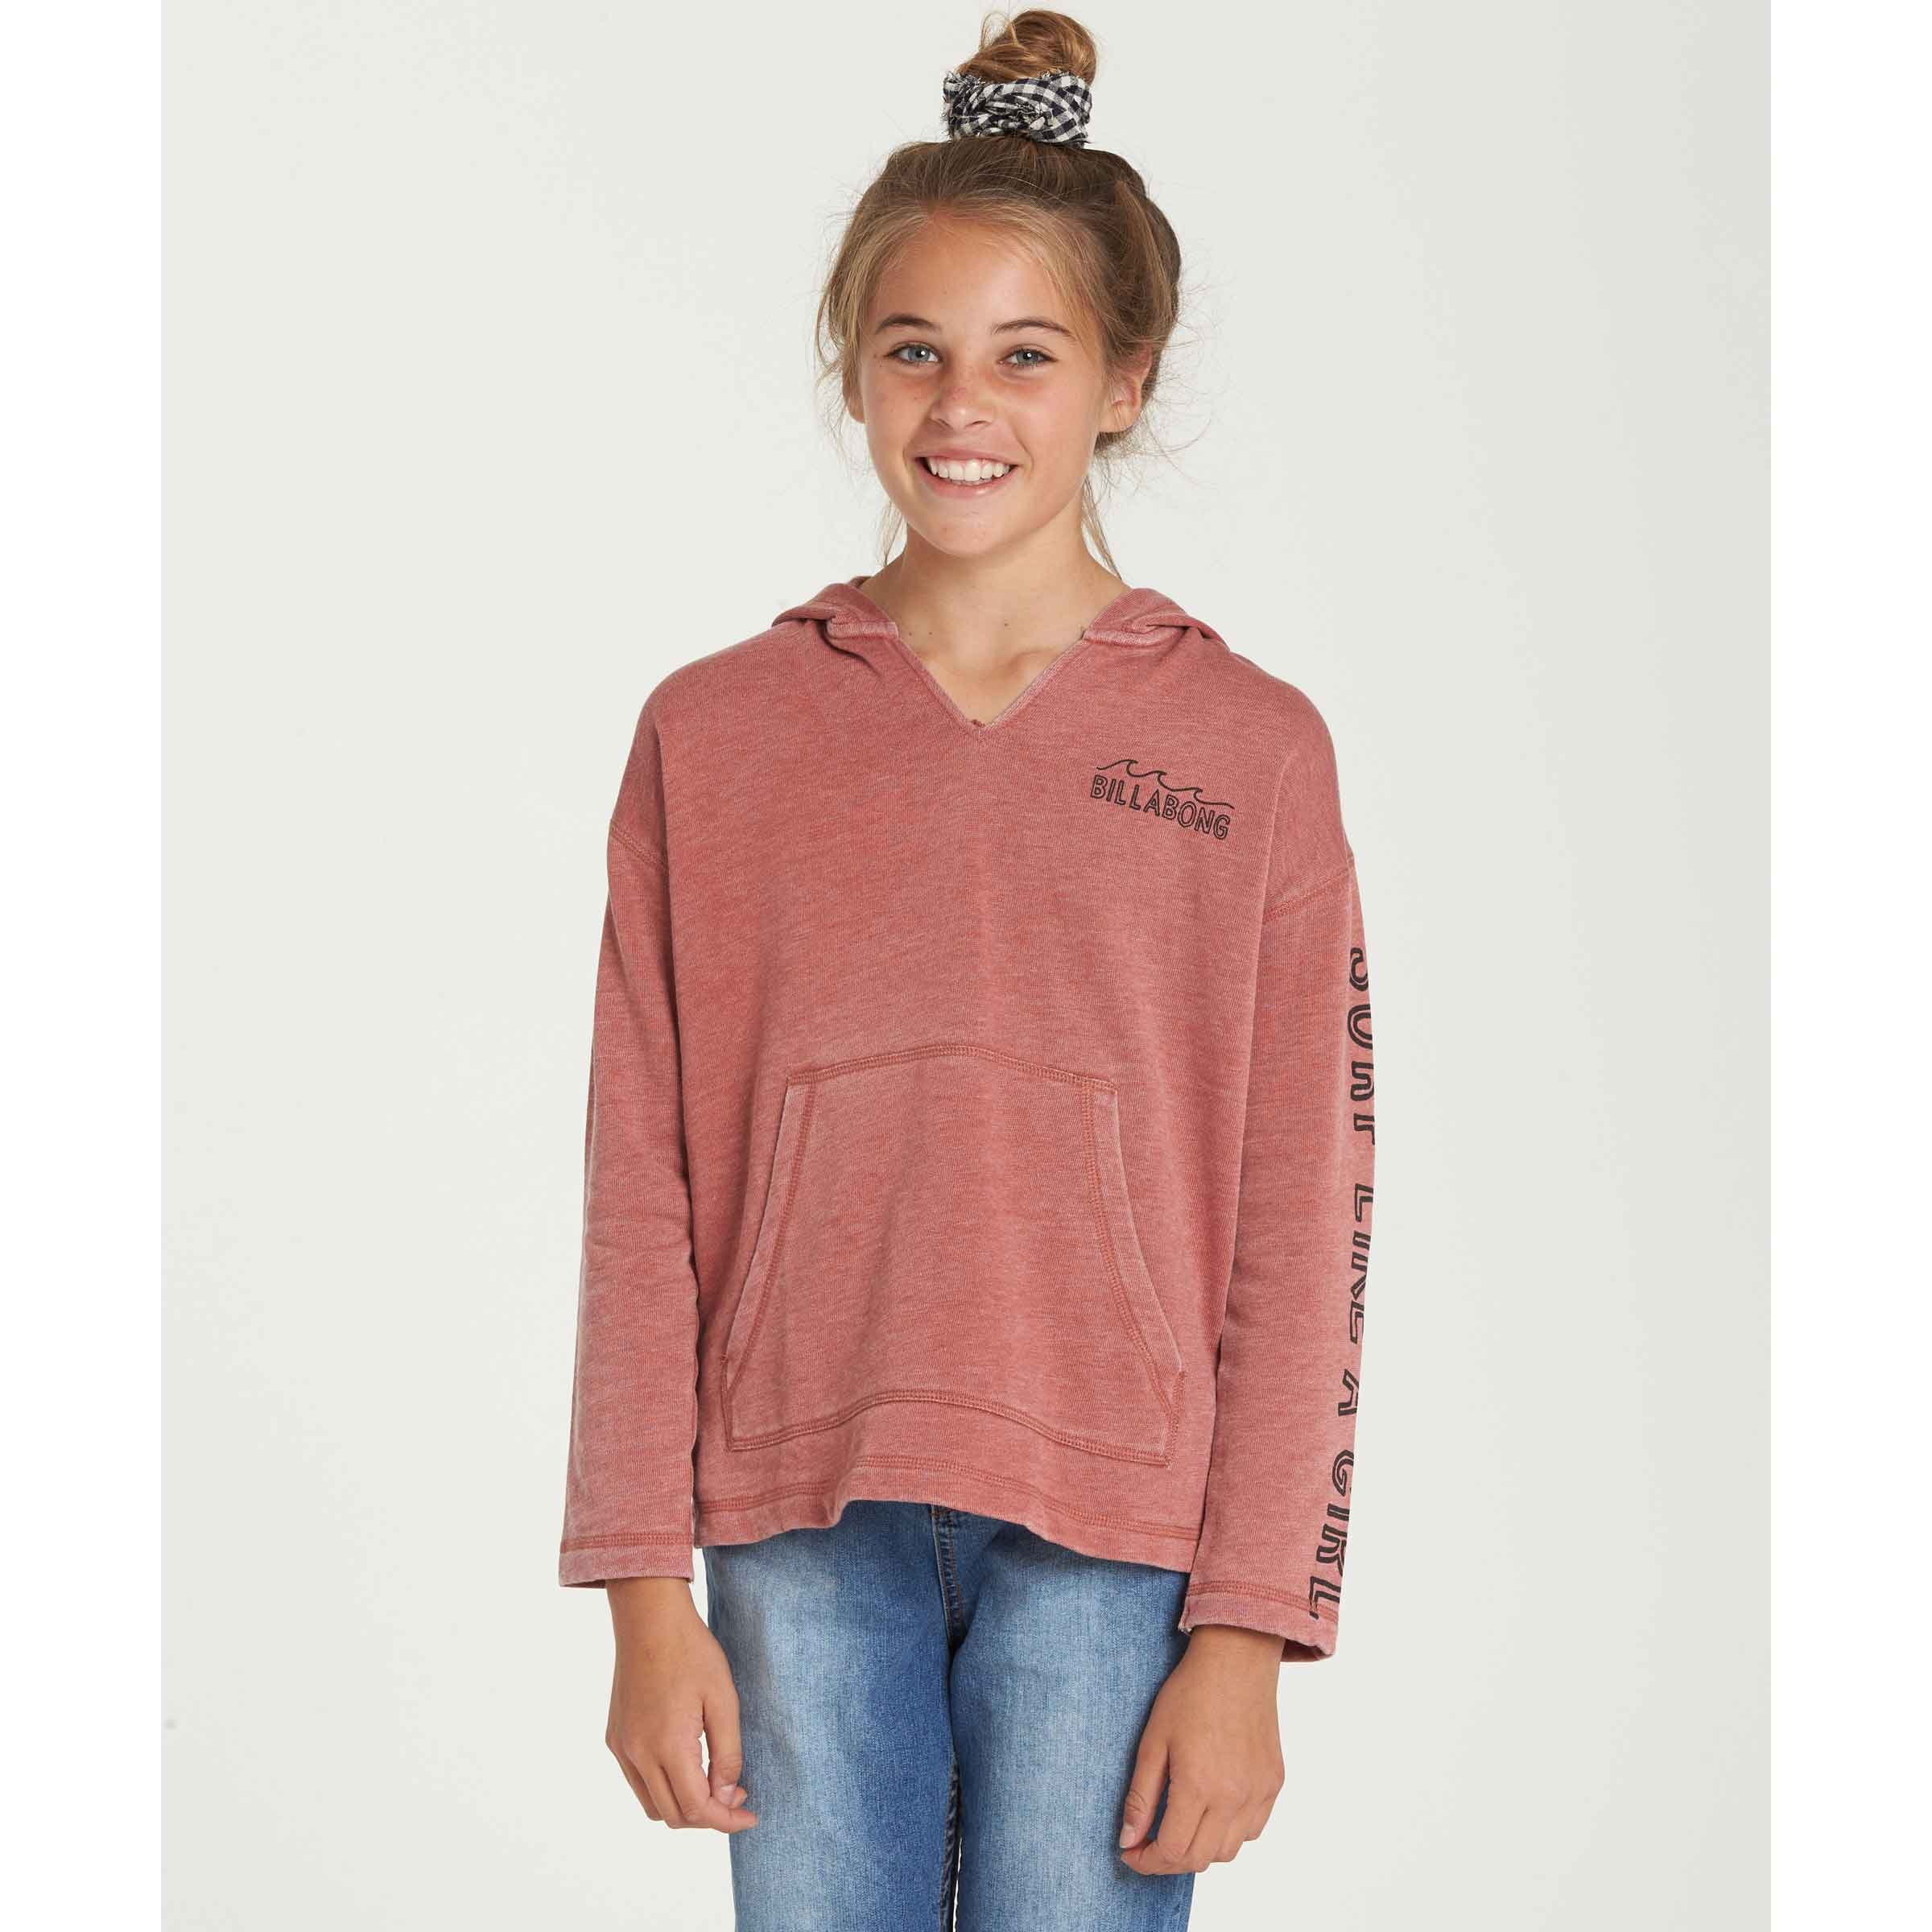 Billabong Big Girls' Sunday Love Fleece, Sienna, XXS